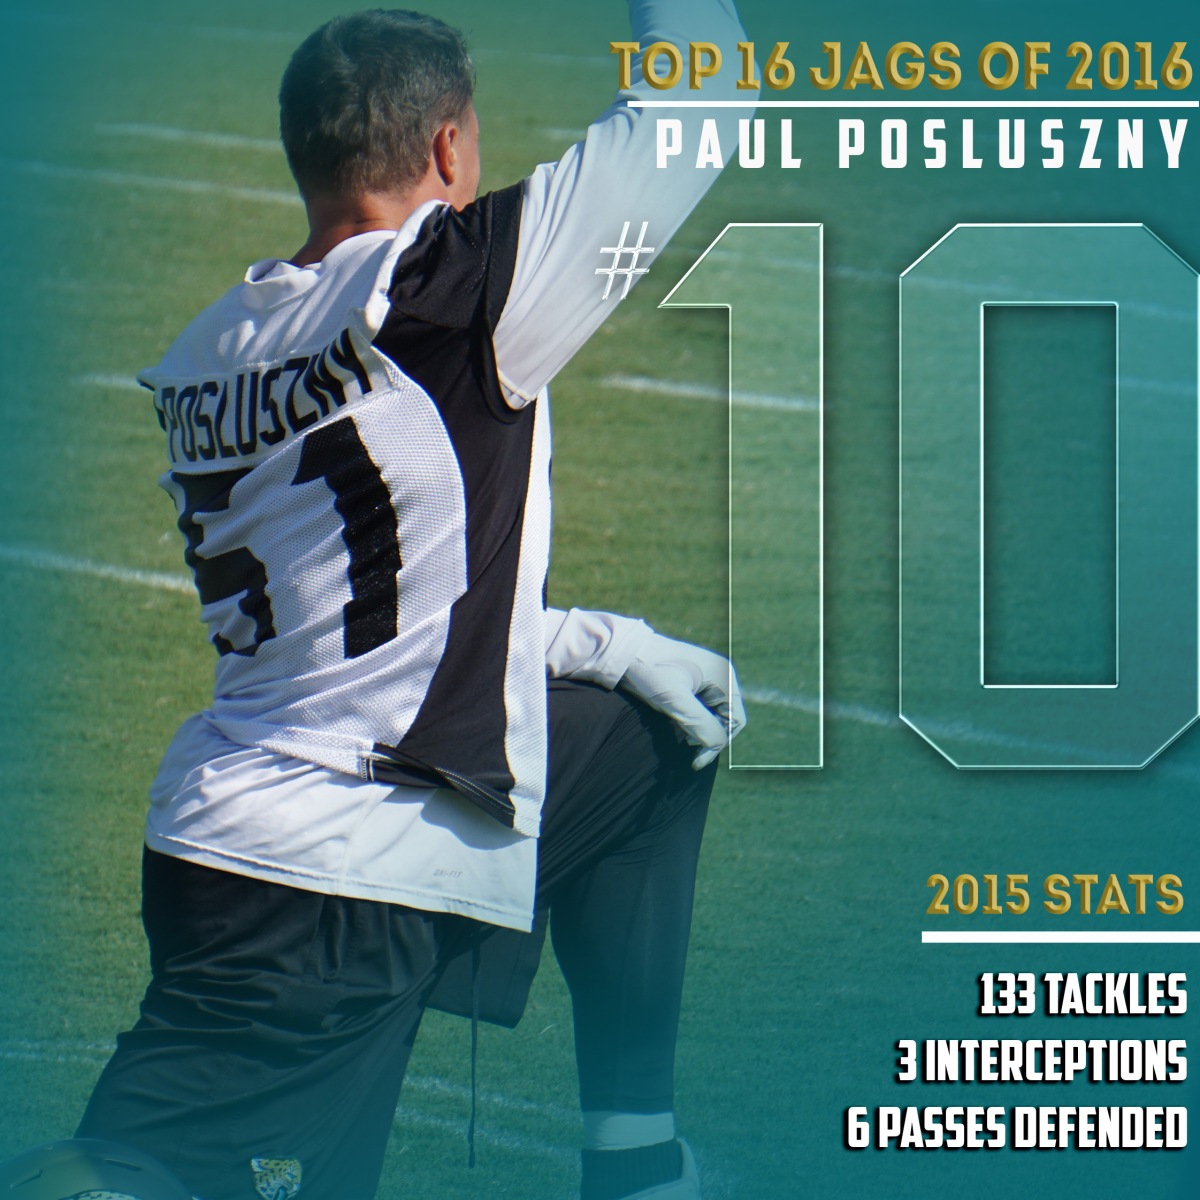 The Top 16 Jaguars of 2016 10 Paul Posluszny – River City Rogue